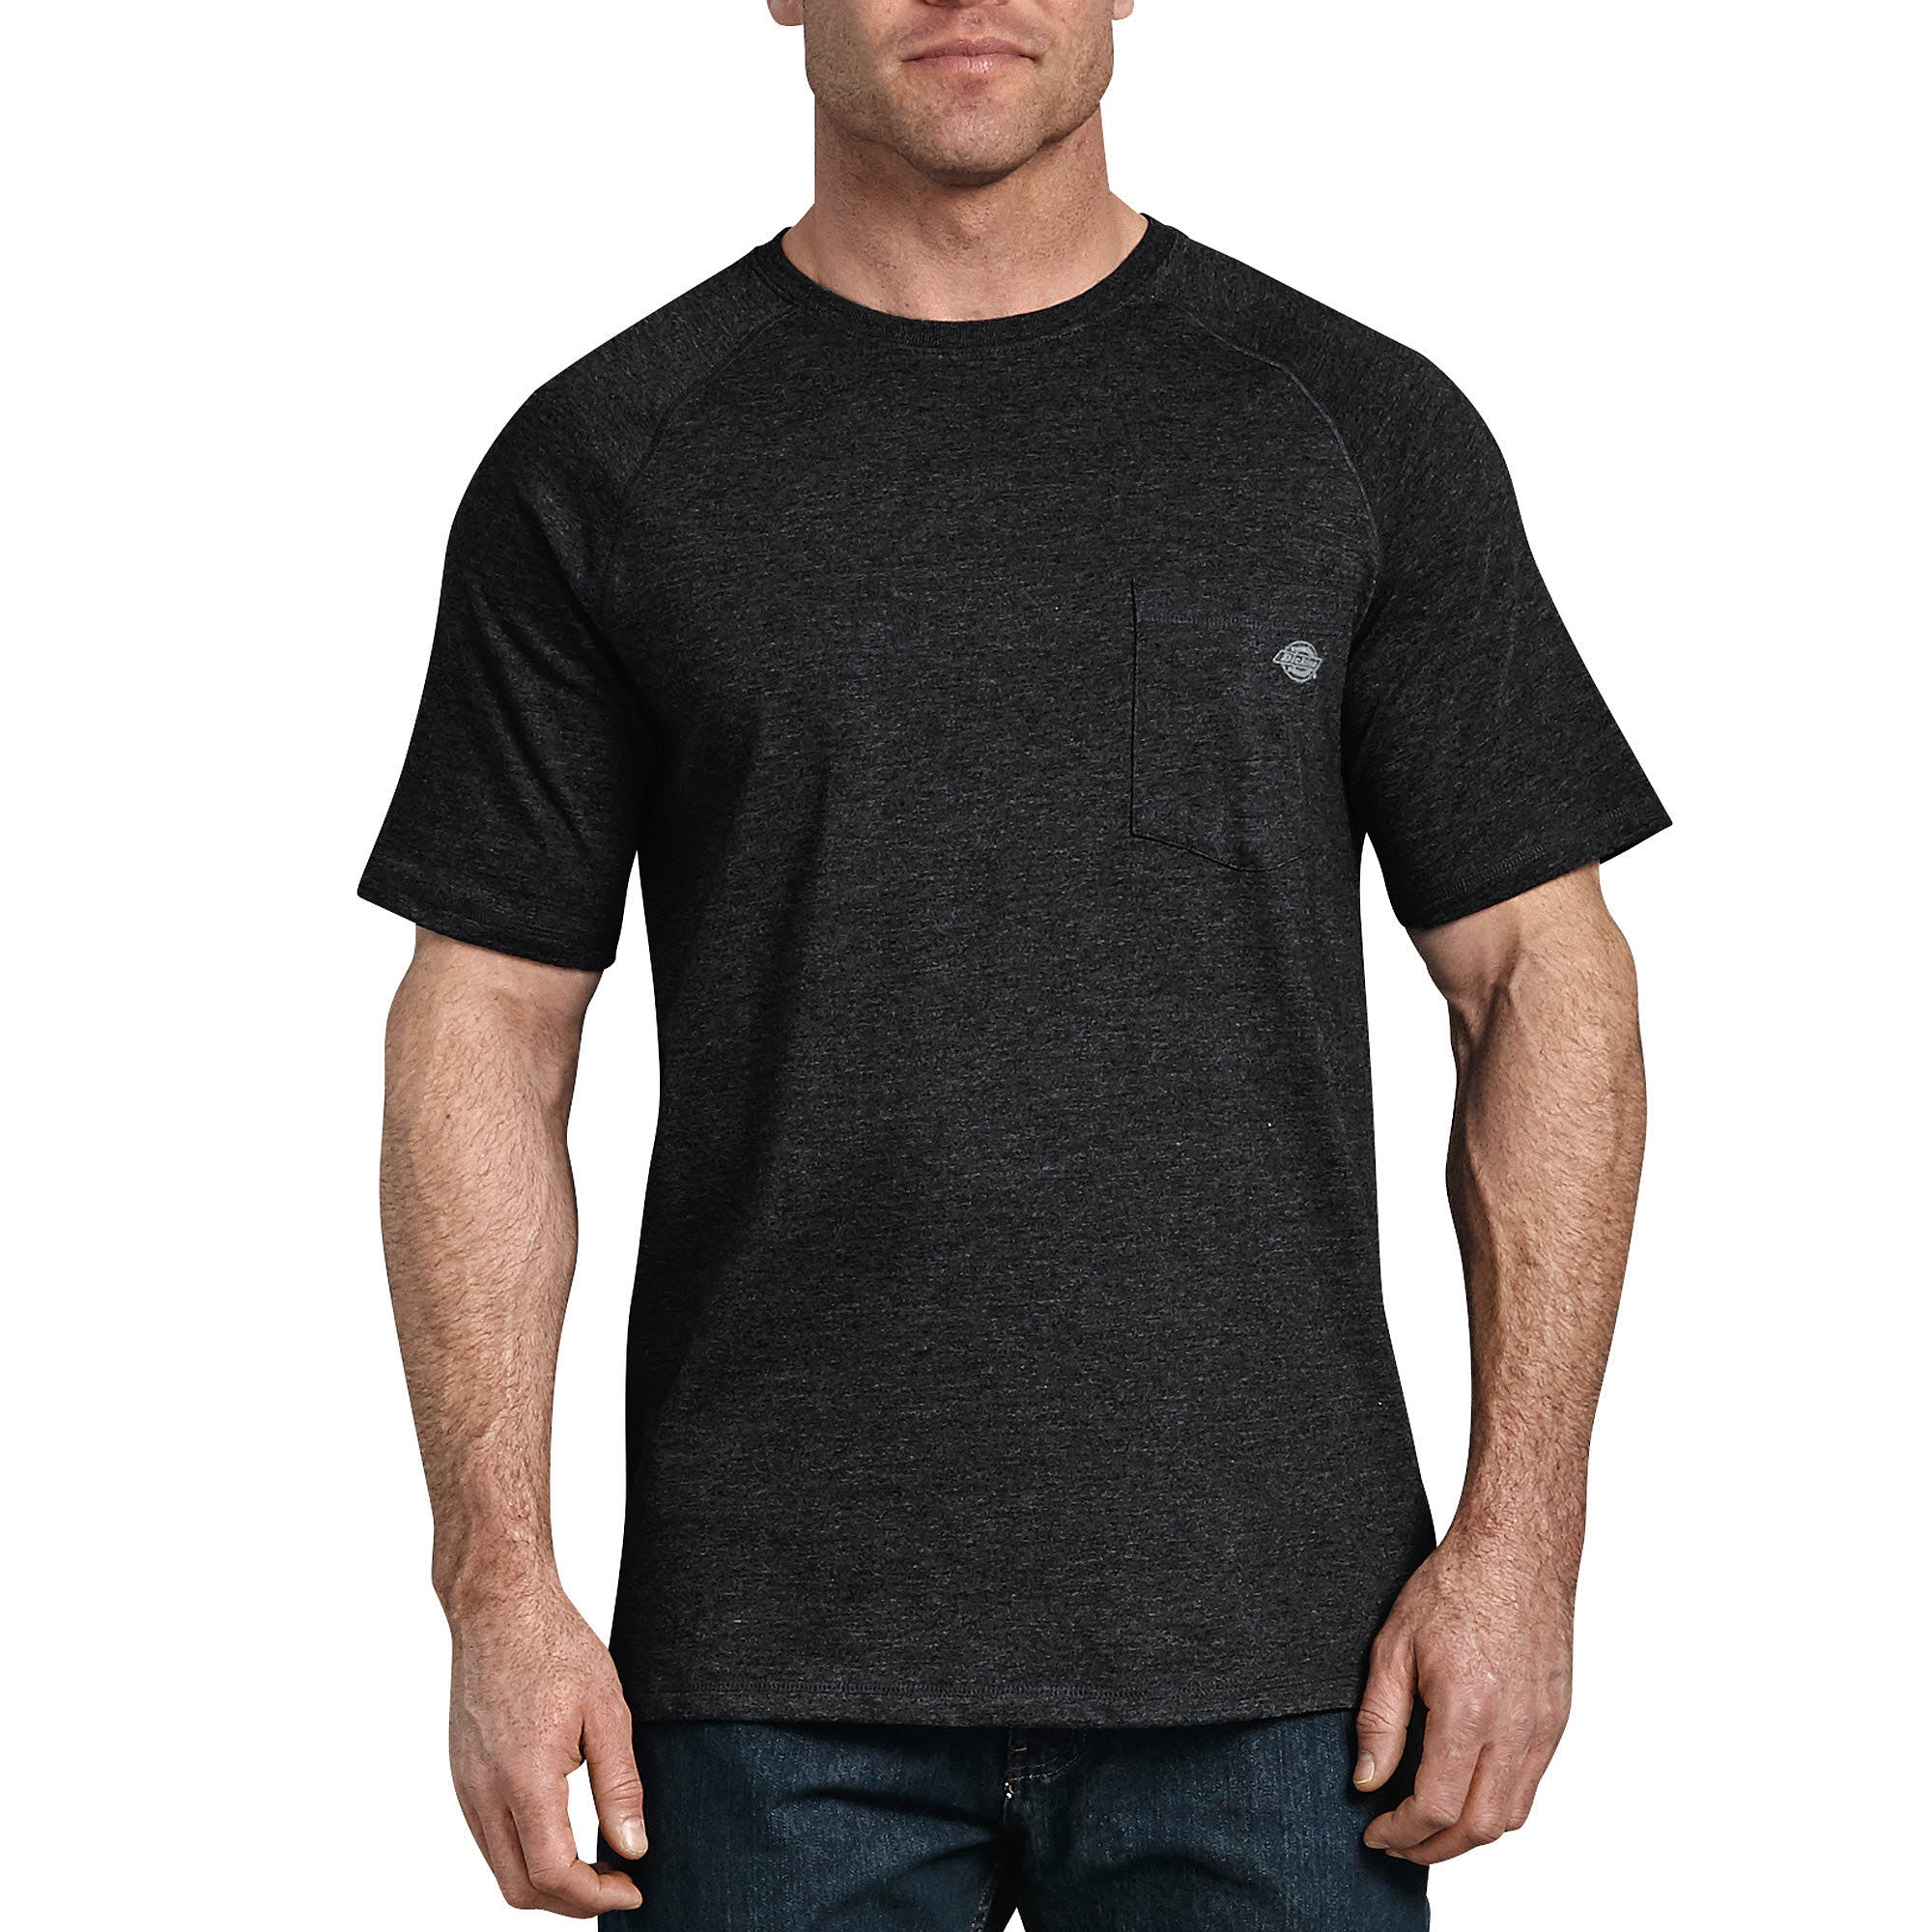 'Dickies' Temp-iQ Performance Cooling T-Shirt - Heather Black